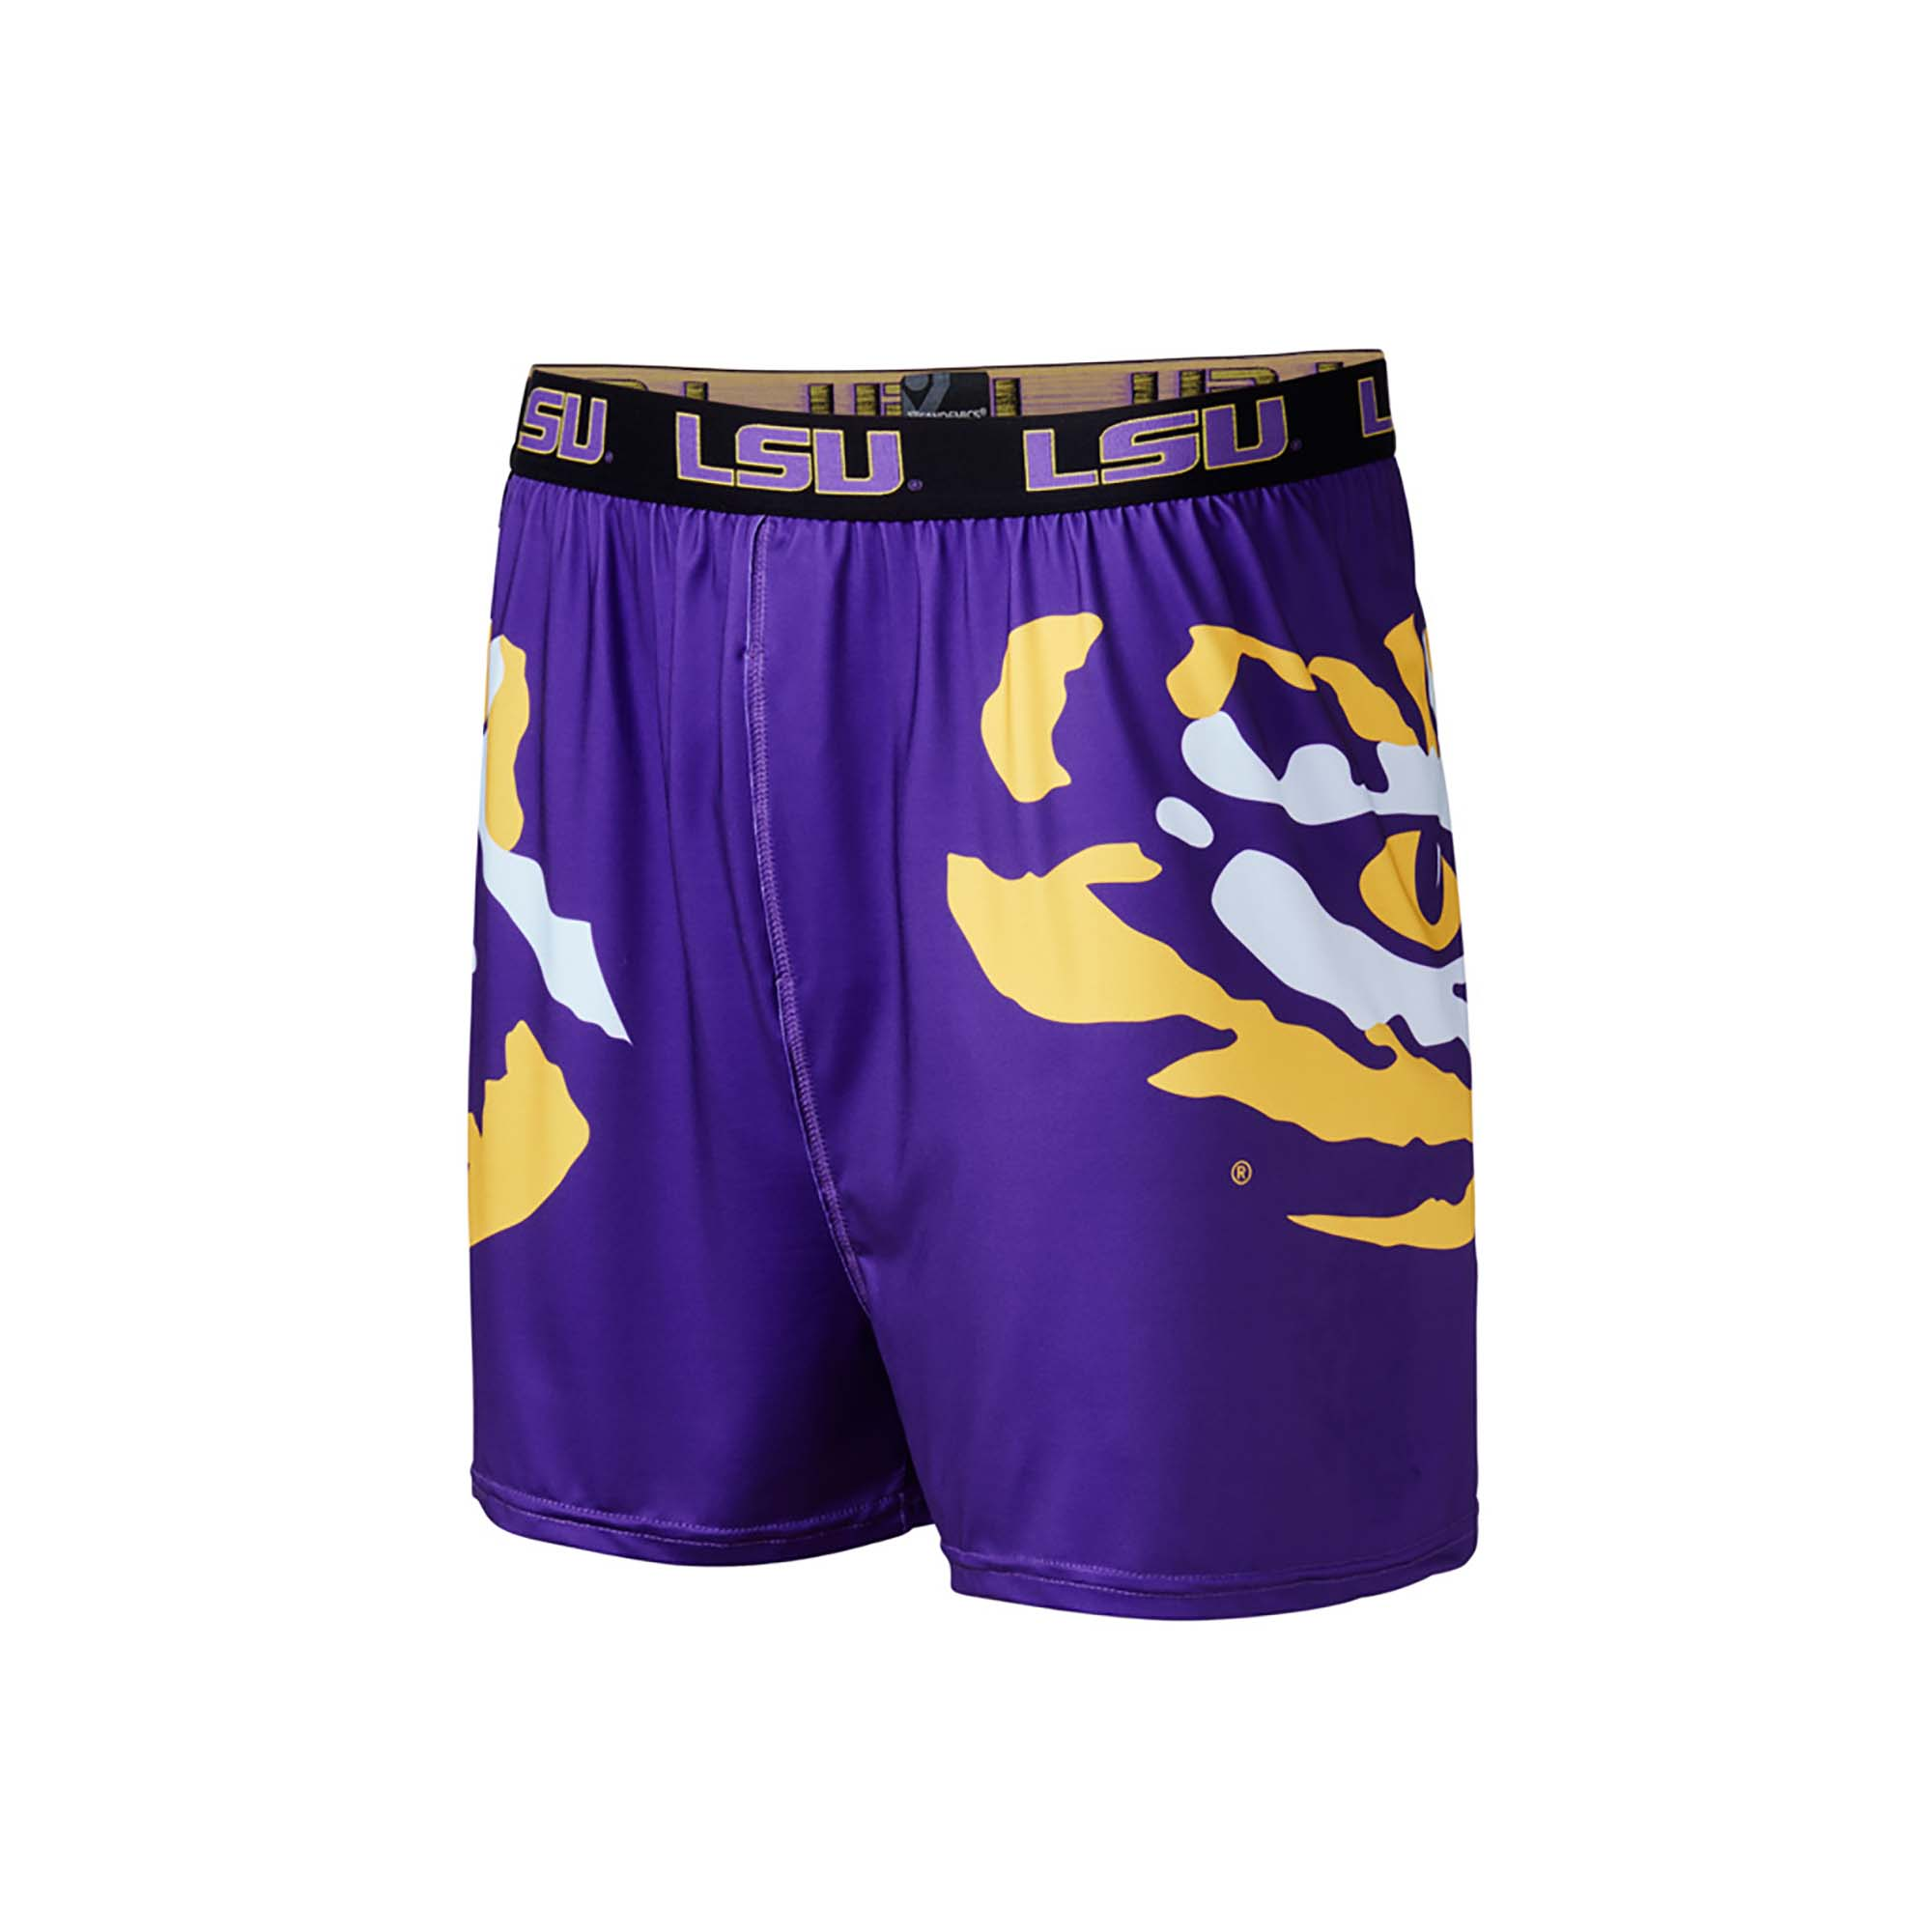 LSU Louisiana State University Tigers Men's Premium Underwear by Fandemics